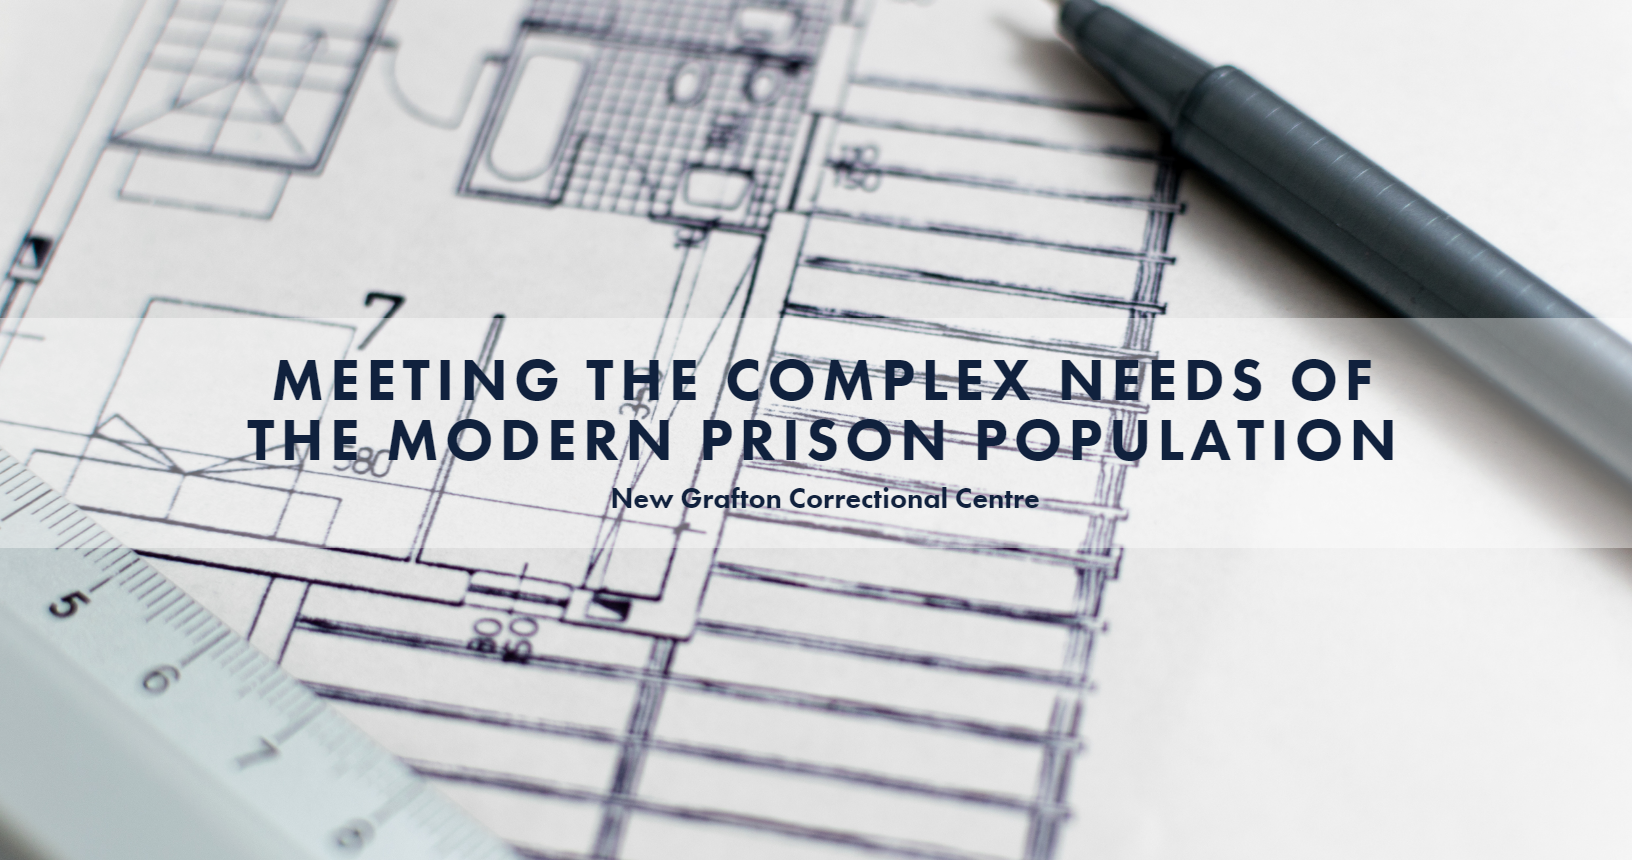 New Grafton Correctional Centre: Meeting the Complex Needs of the Modern Prison Population